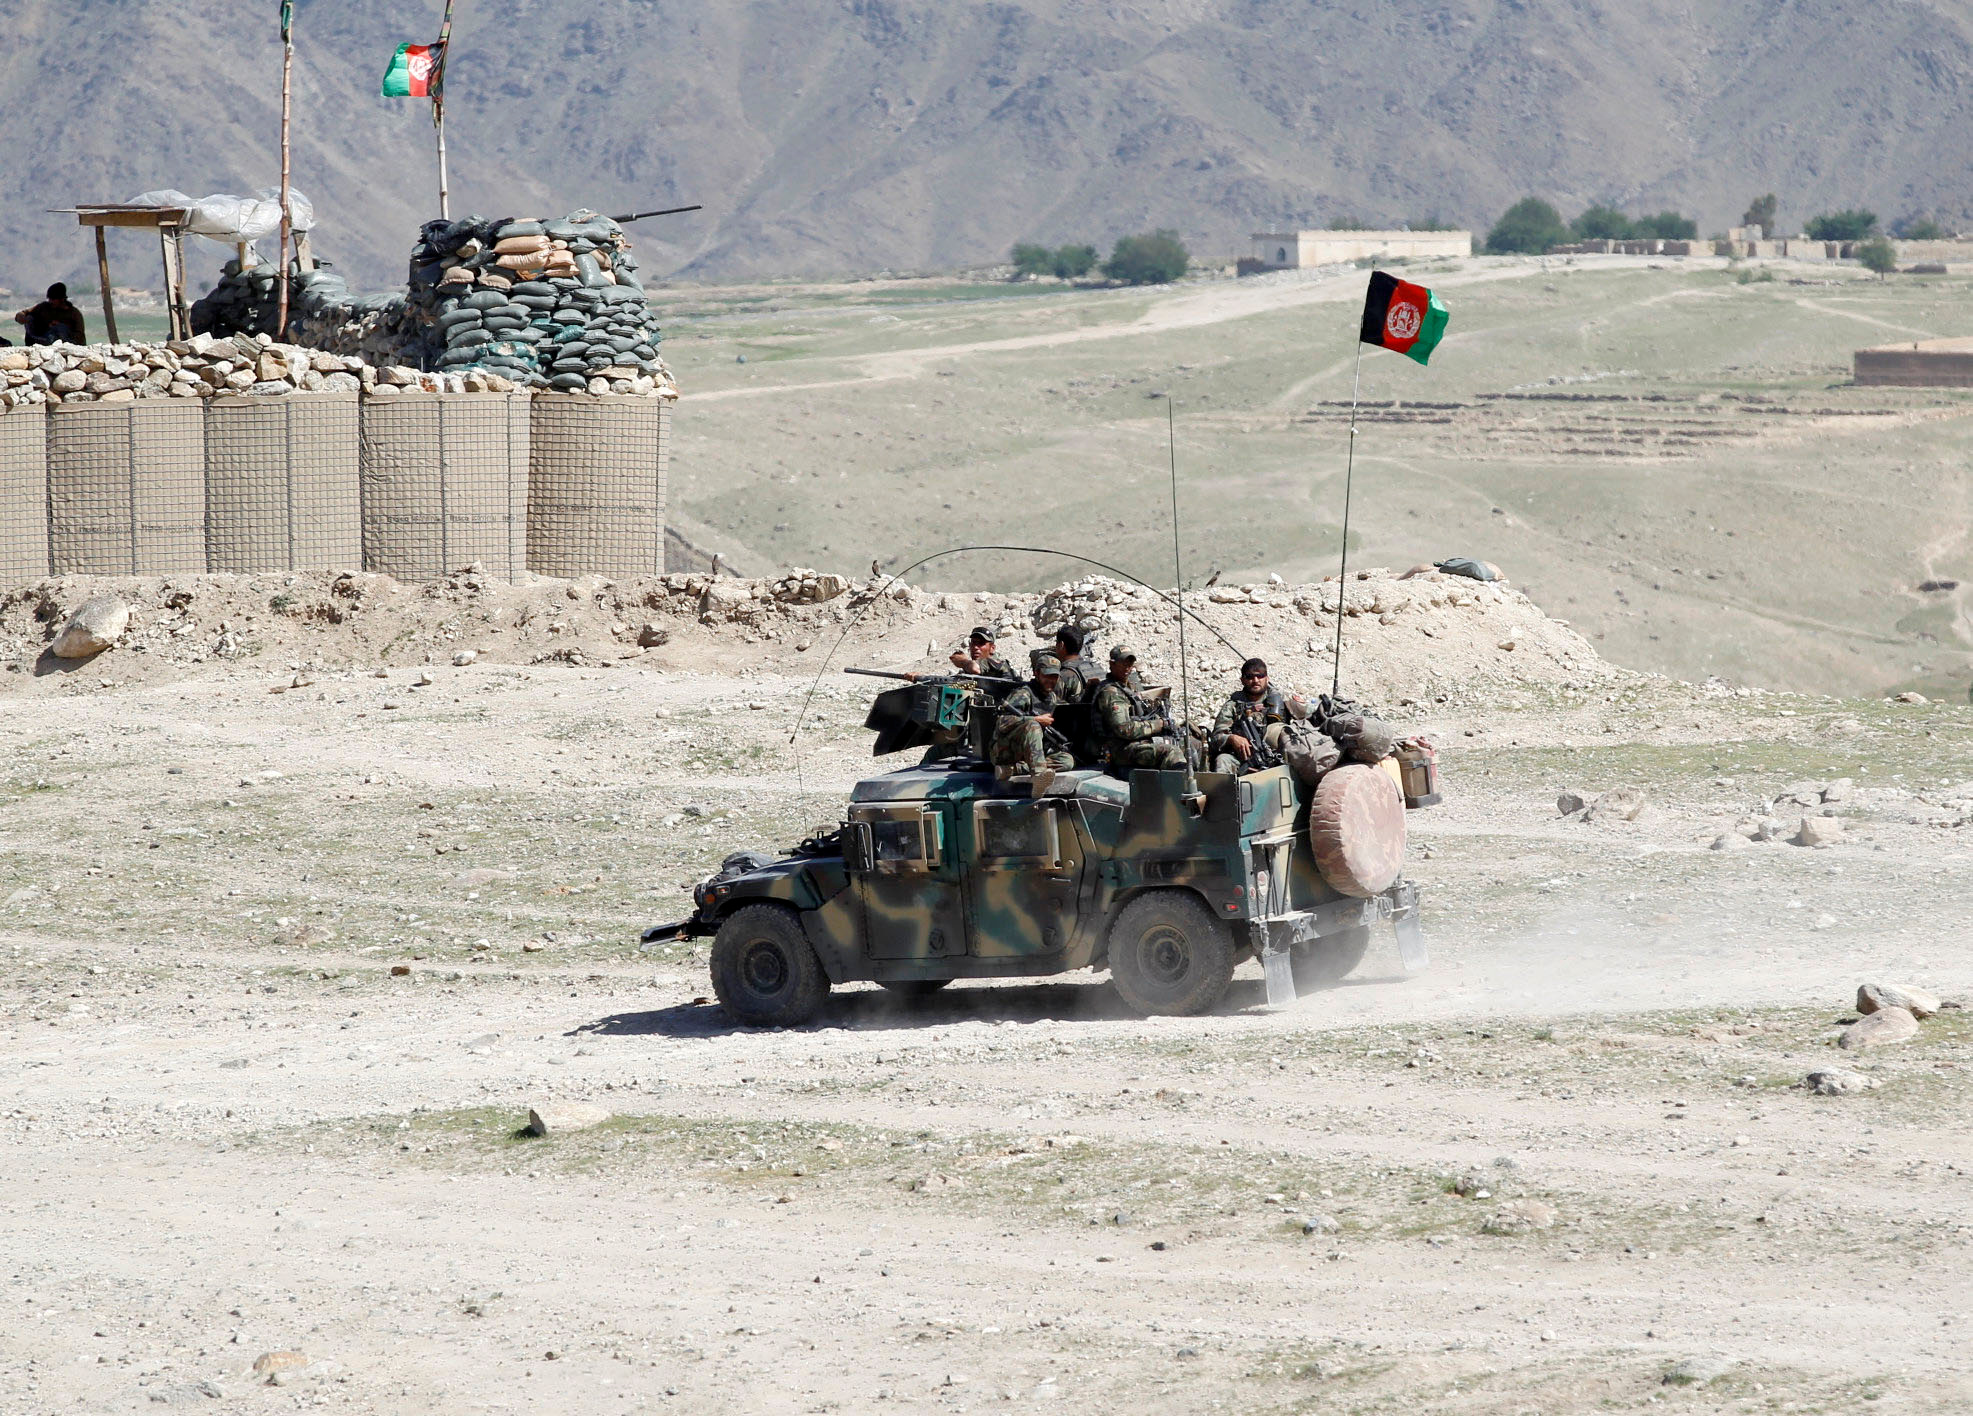 Afghan special forces patrol in Pandola village near the site of a U.S. bombing in the Achin district of Nangarhar province in eastern Afghanistan April 14, 2017.